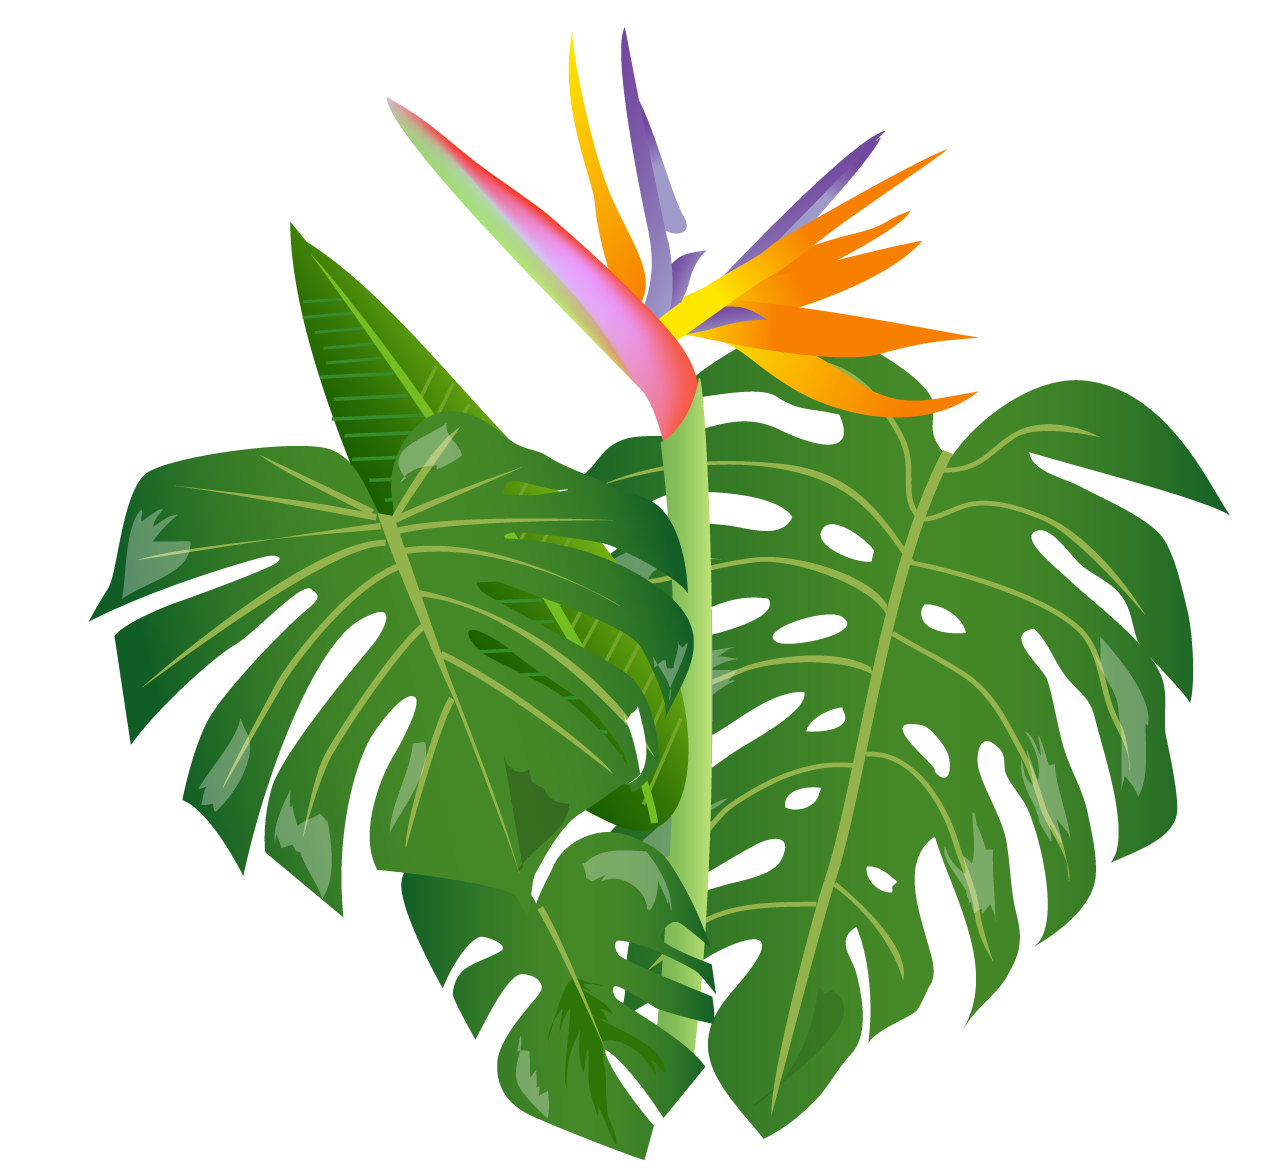 royalty free download Shrub free on dumielauxepices. Bush clipart leaf jungle.